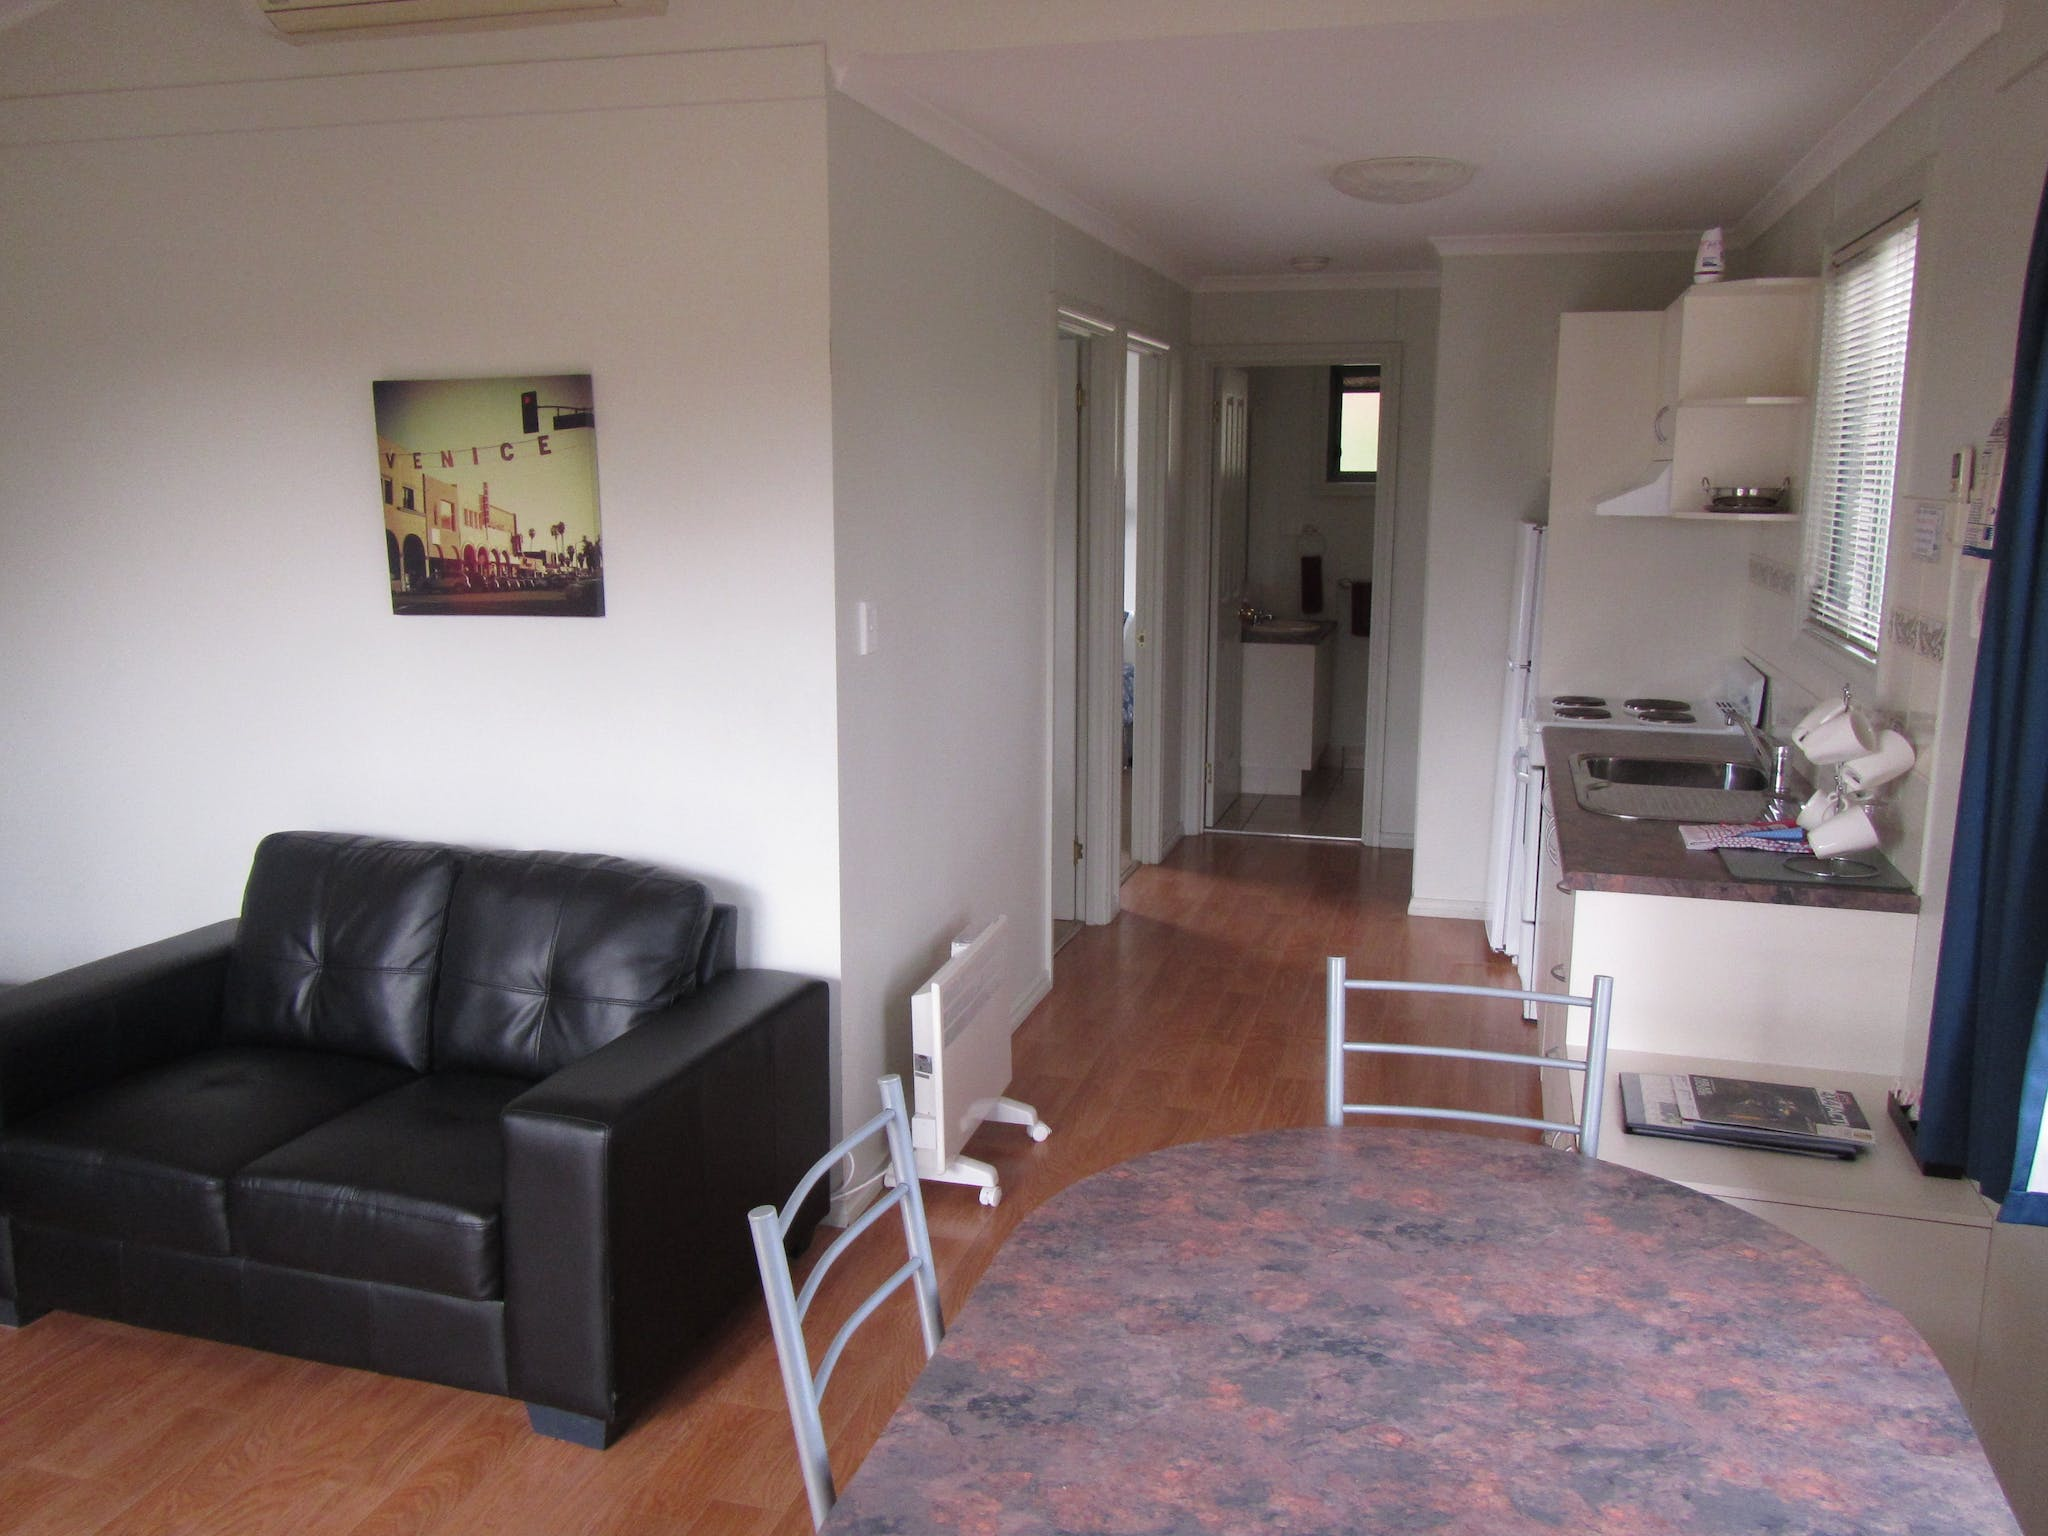 Two bedroom deluxe cabin, showing kitchen and dining area through to bathroom